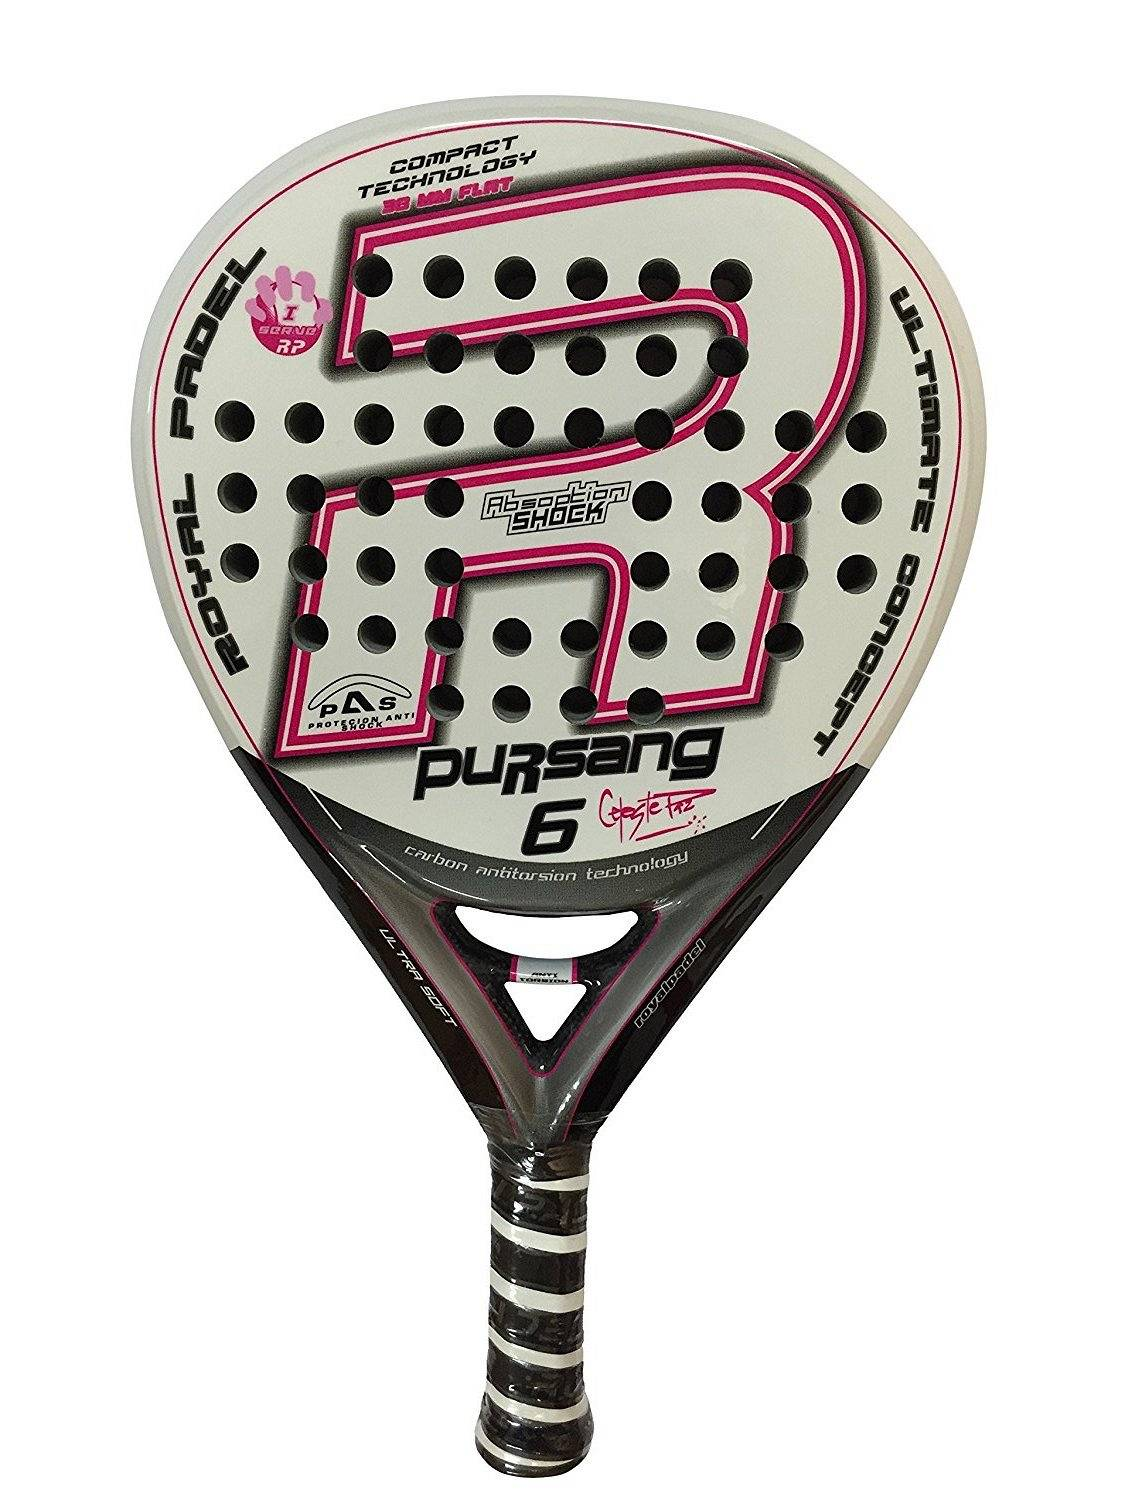 Royal Padel Racchetta Paddle Royal Padel RP 787 PURSANG WOMAN 2018